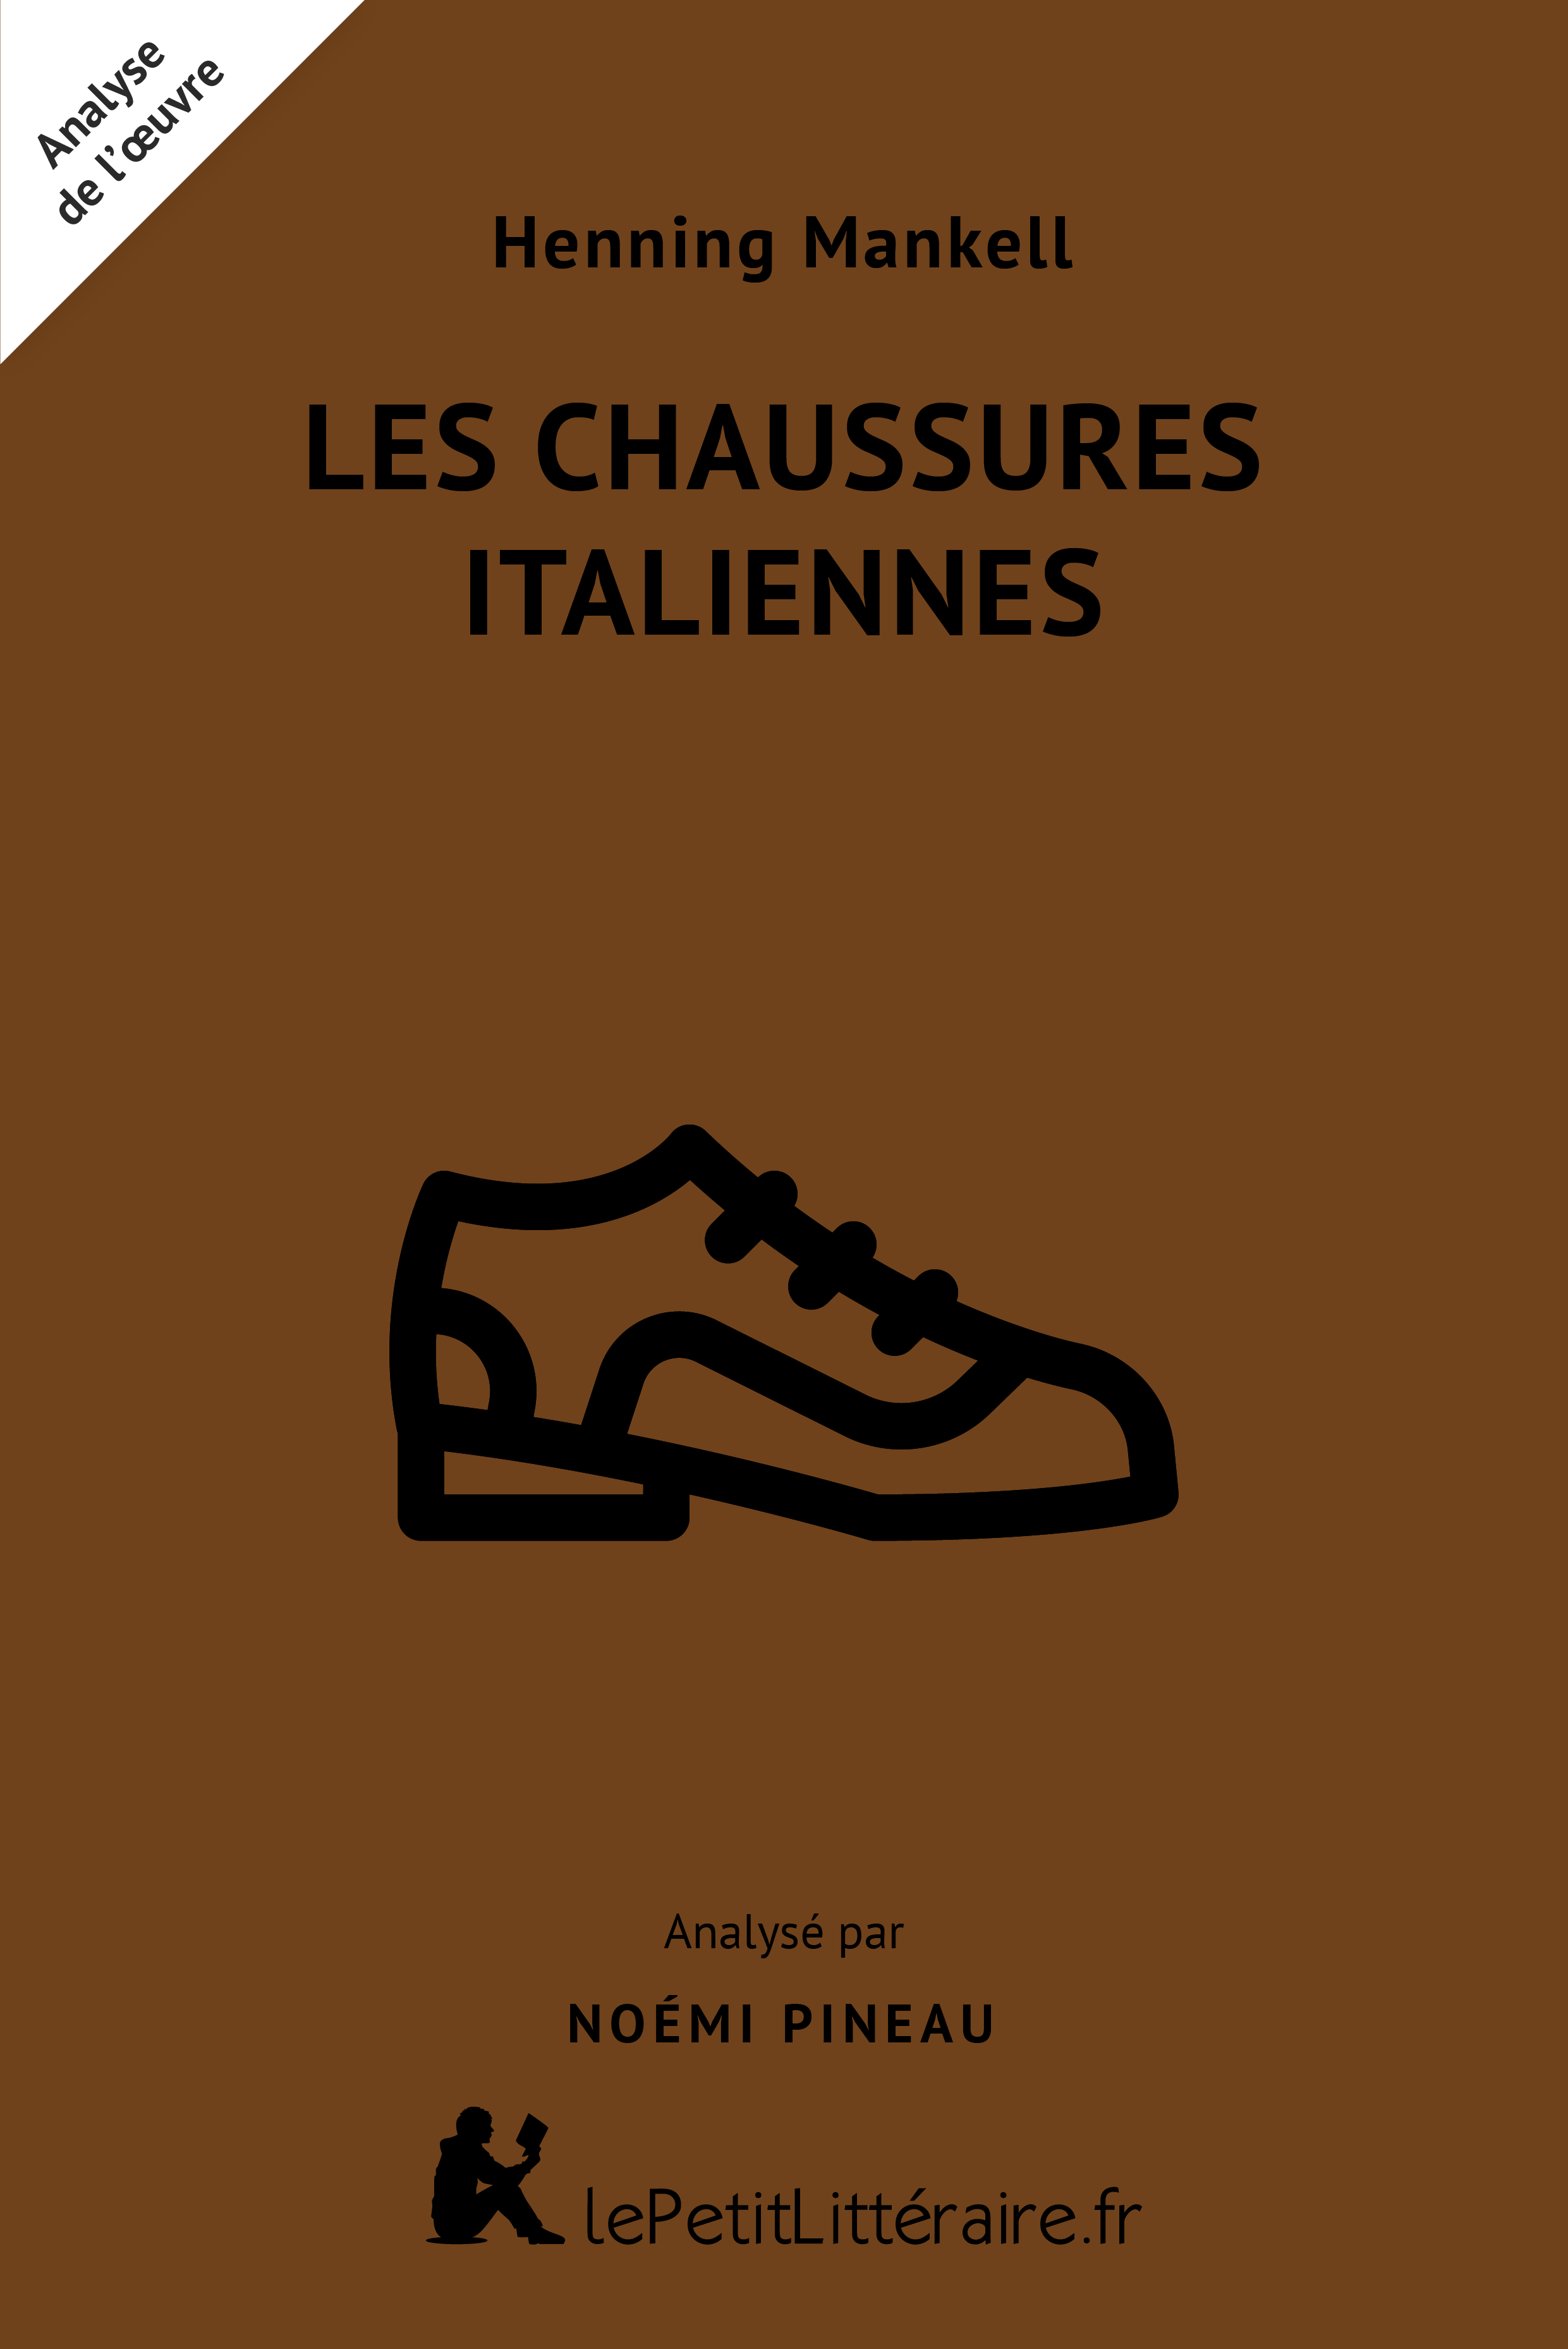 Les Chaussures italiennes